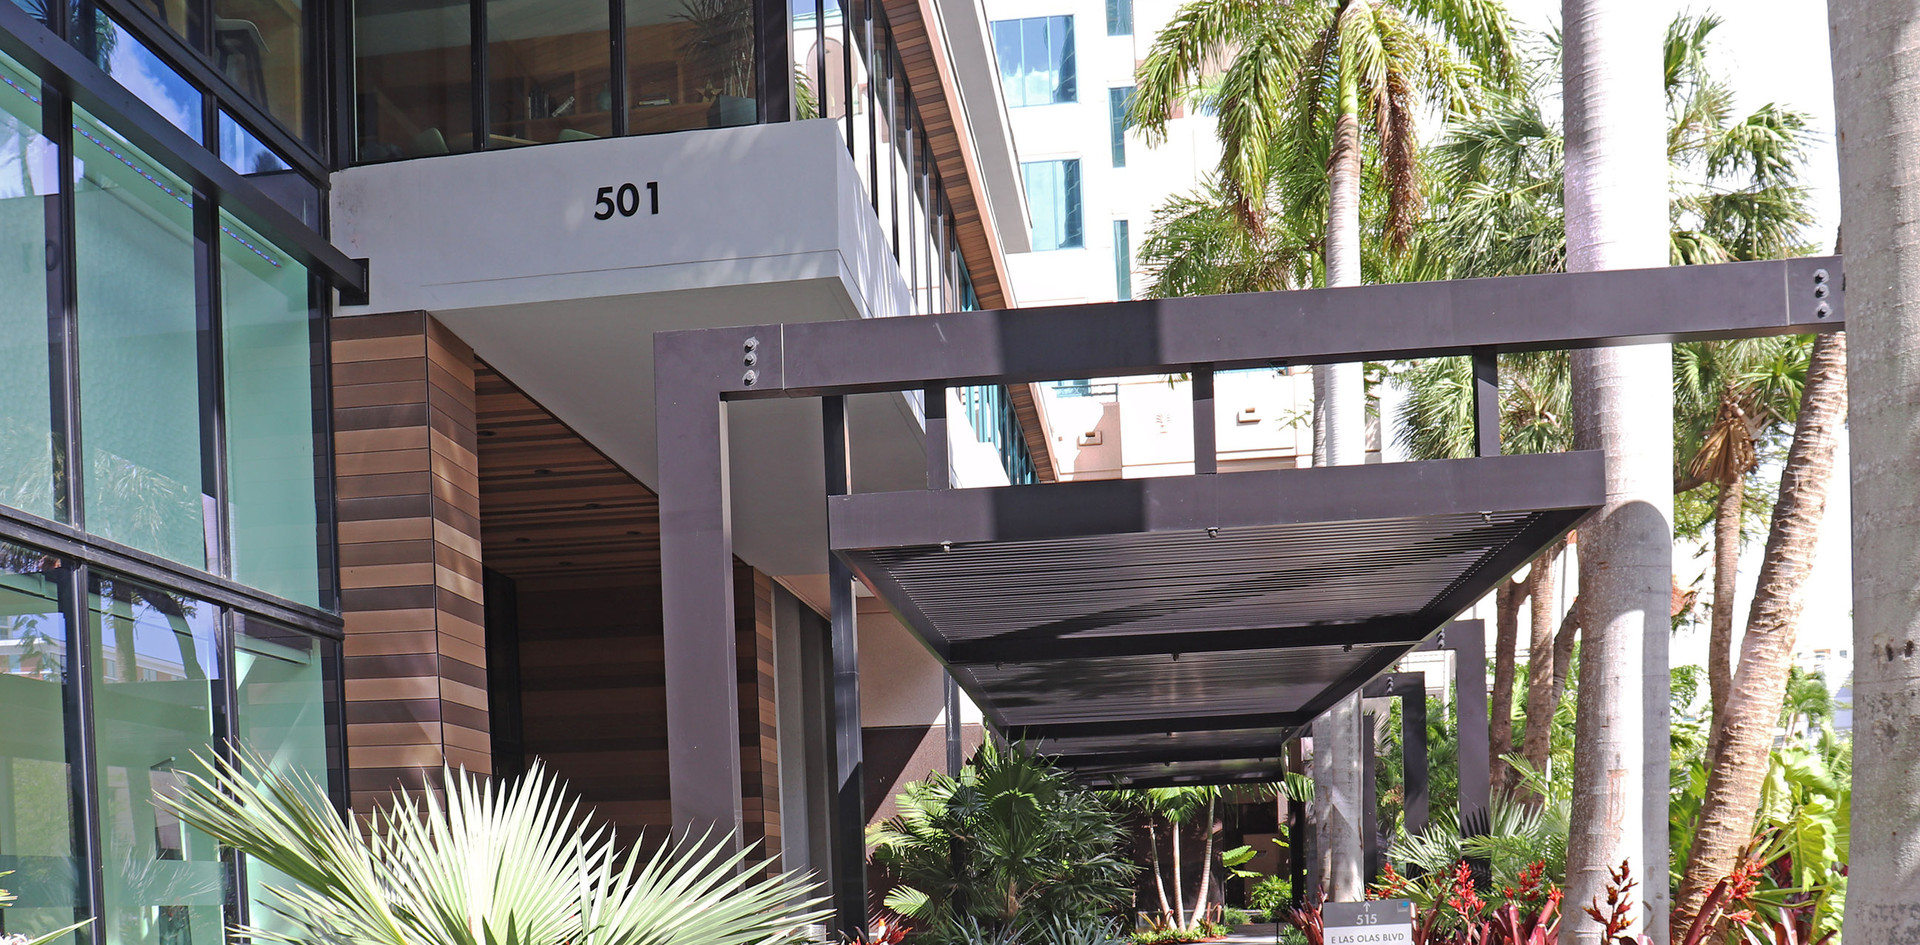 The Gallery's Fort Lauderdale office